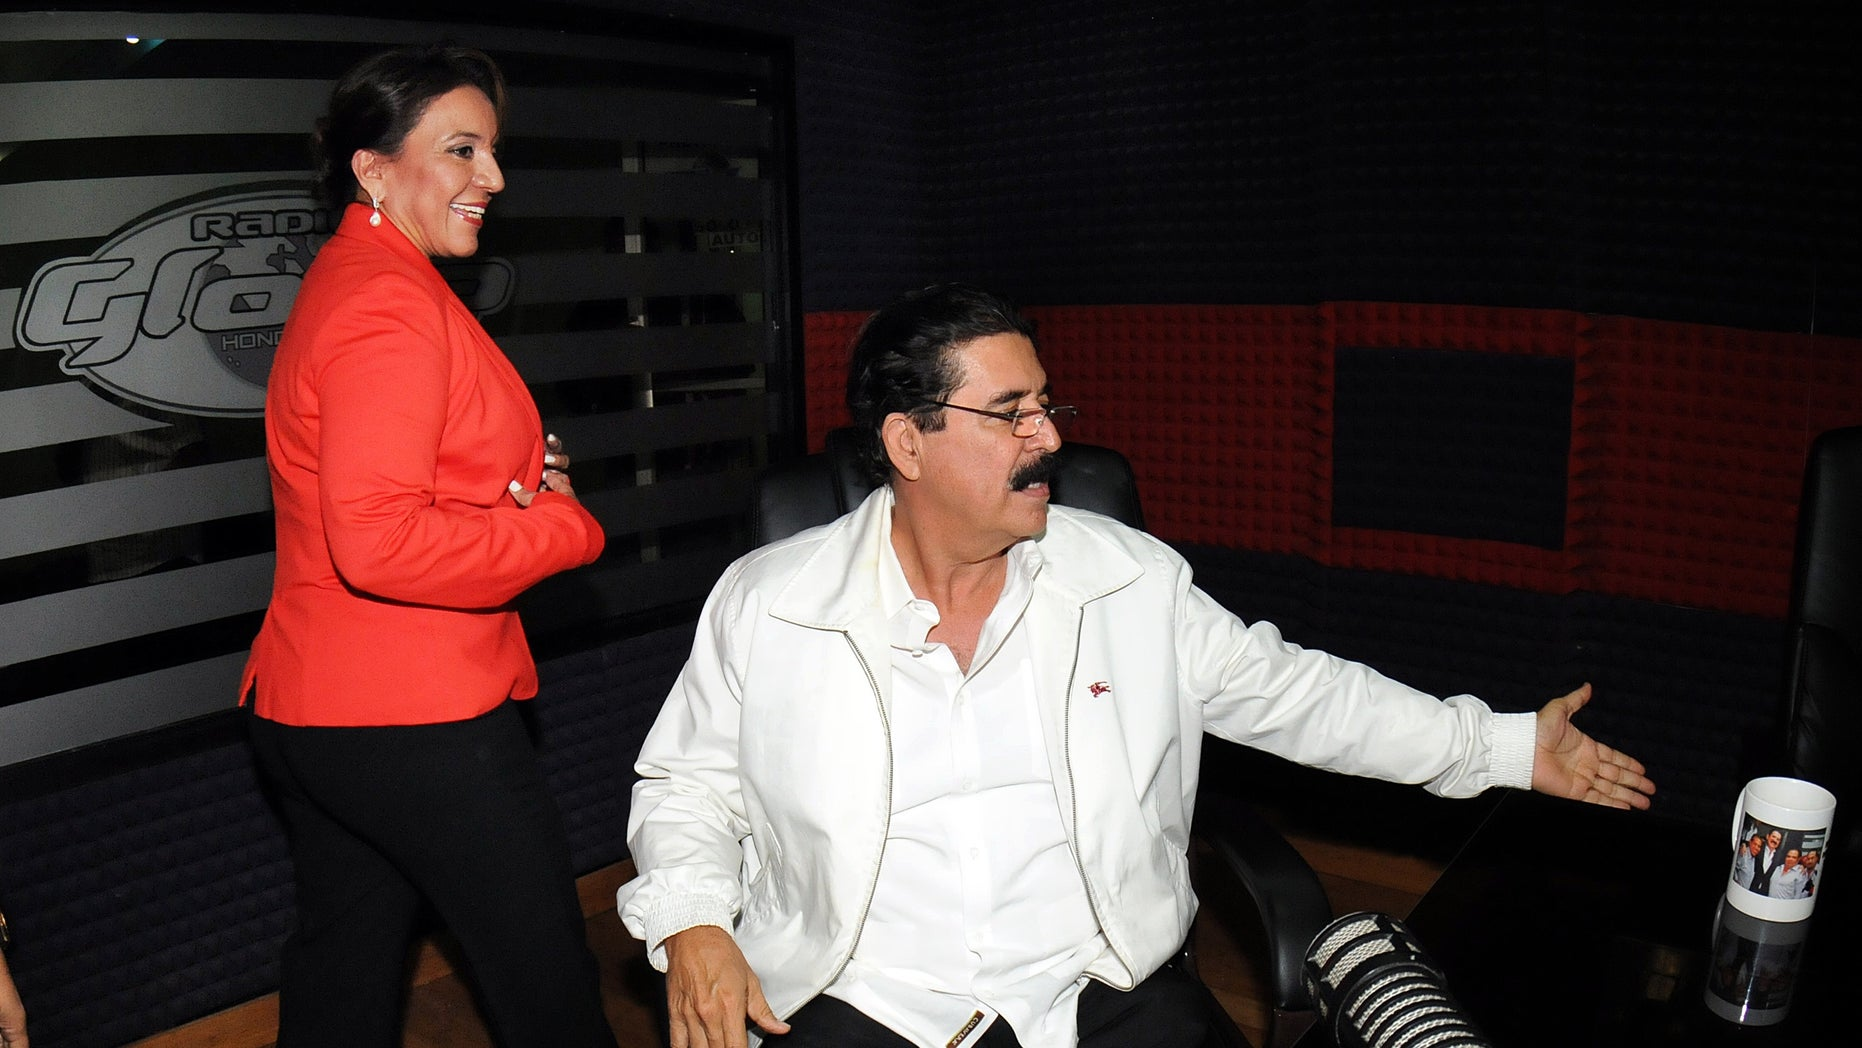 Free Party Presidential candidate Xiomara Castro, left, and her husband, ousted President Manuel Zelaya, arrive for an radio interview in Tegucigalpa, Honduras, Wednesday Nov. 27, 2013. Castro spoke about last Sunday's election results which declared ruling party candidate Juan Orlando Hernandez the winner, saying that there was fraud in the elections and that she will present the evidence Friday. (AP Photo/Fernando Antonio)